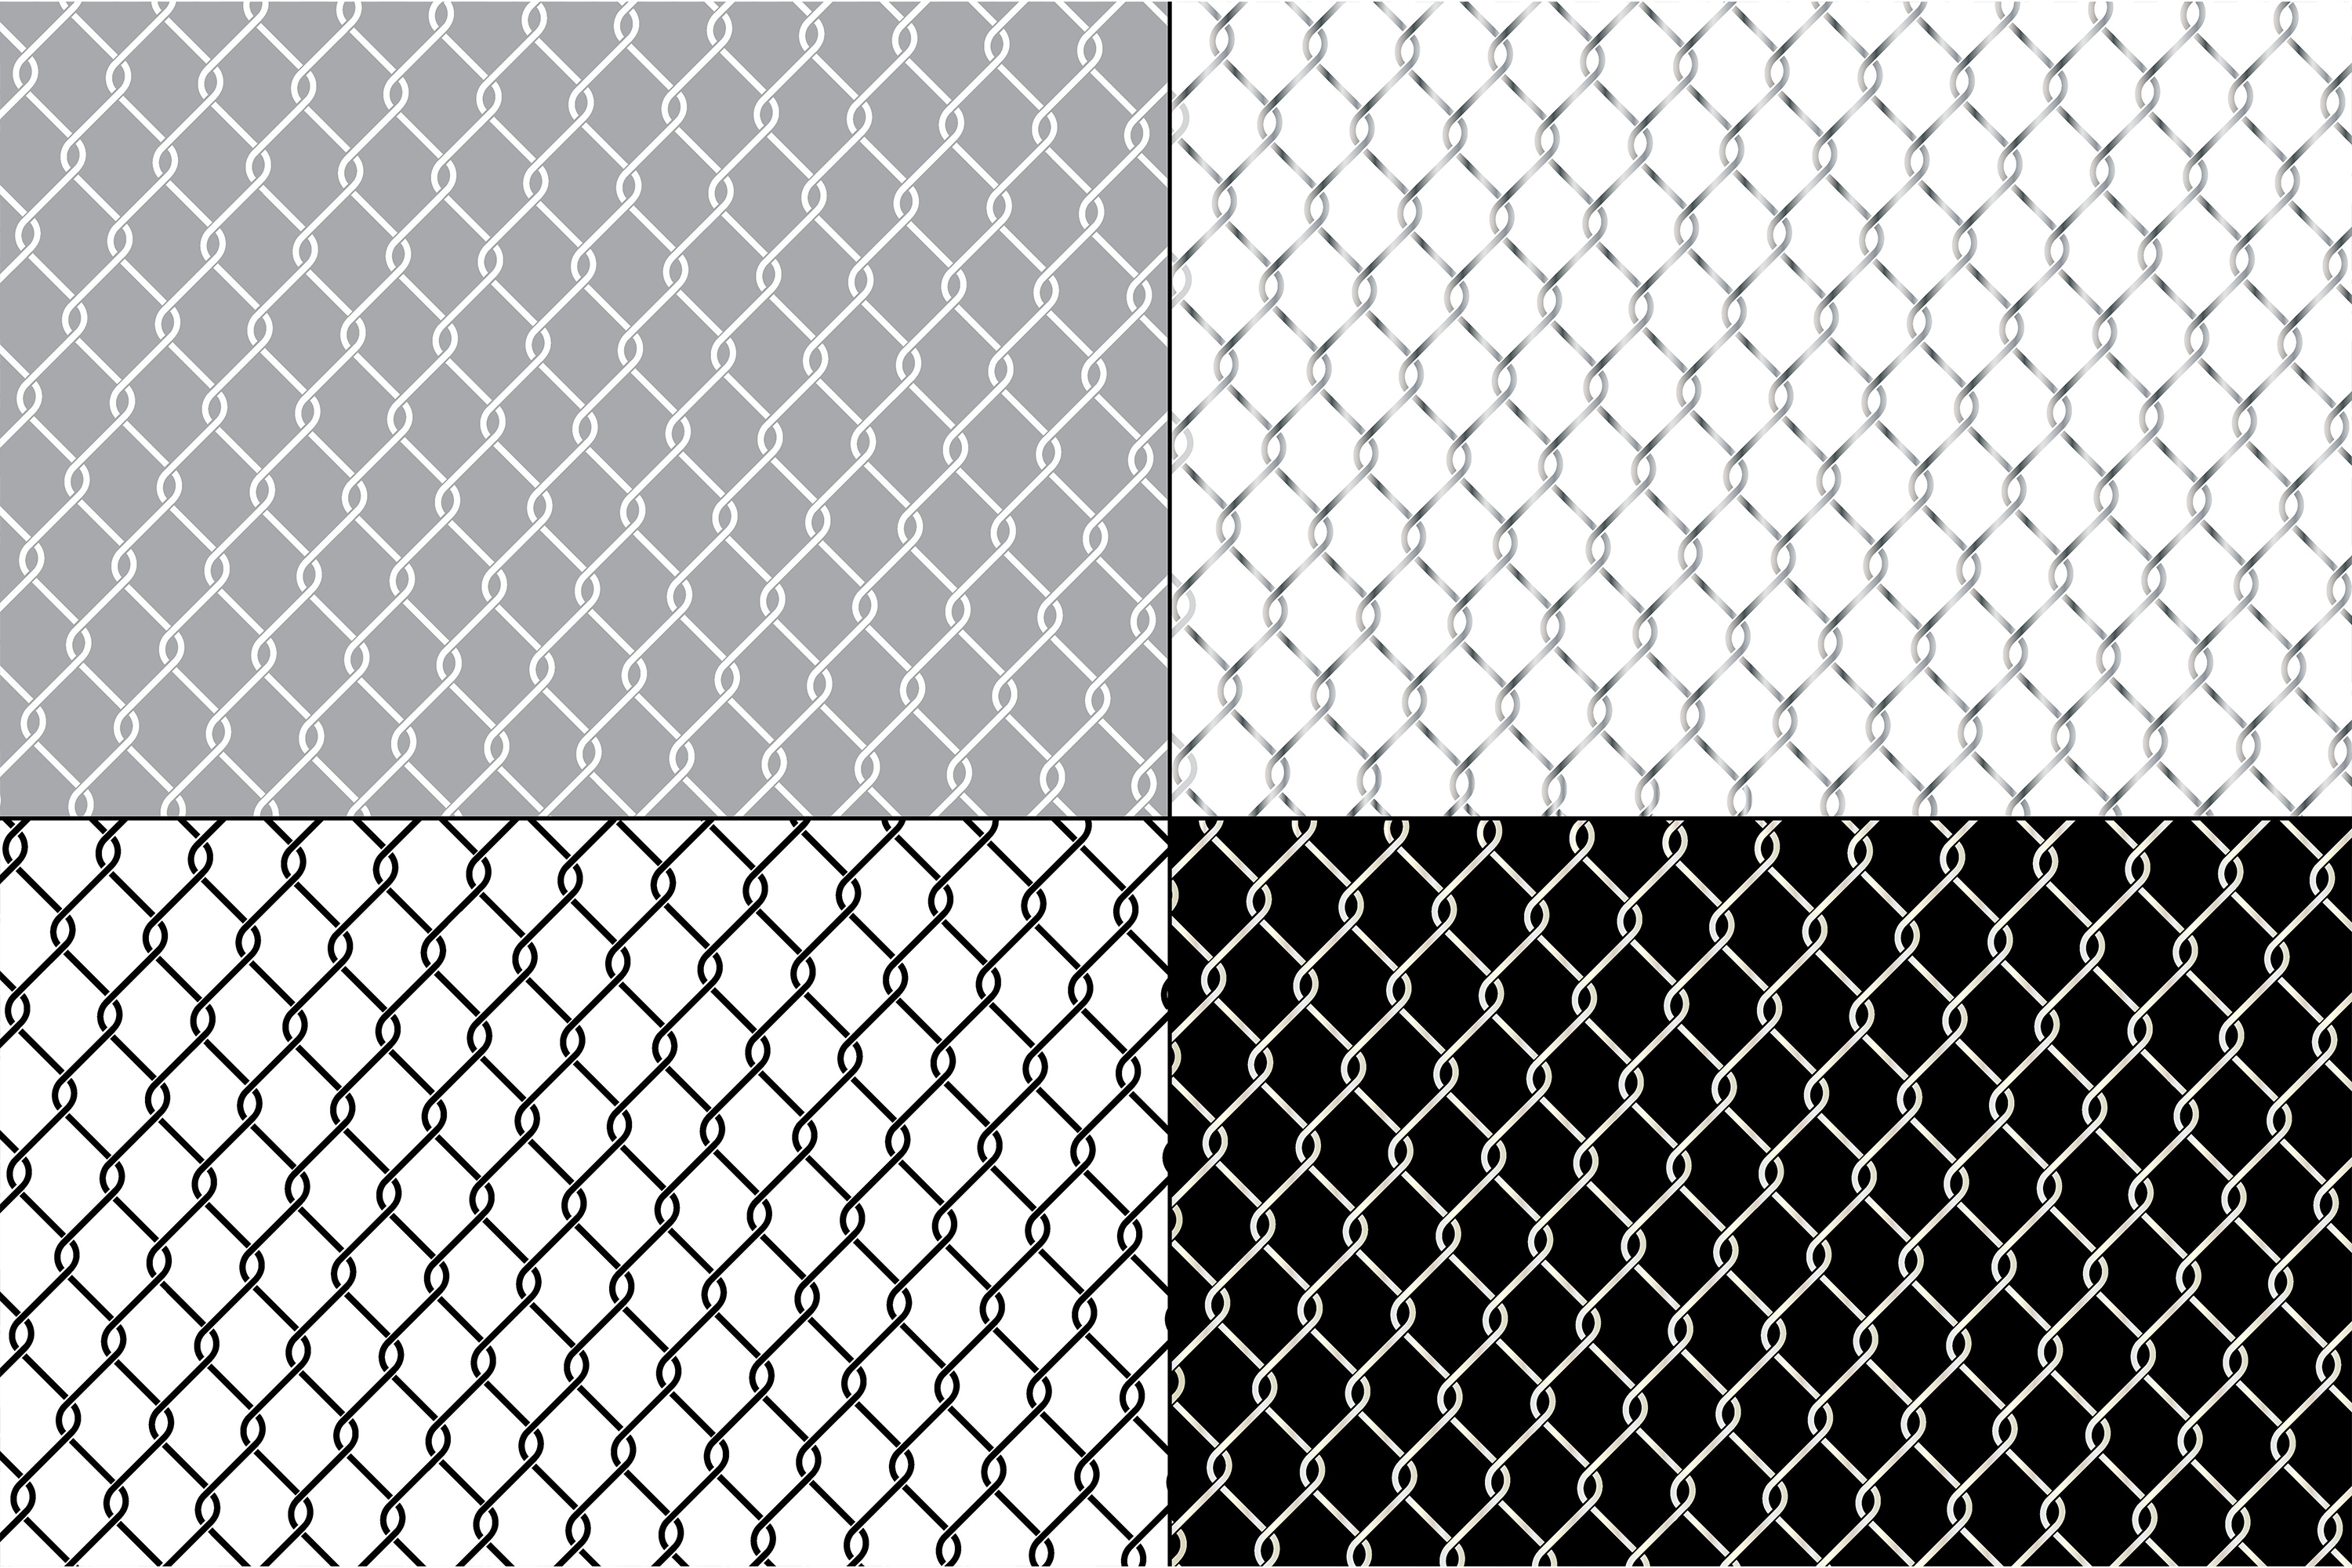 Chainlink Patterns example image 4